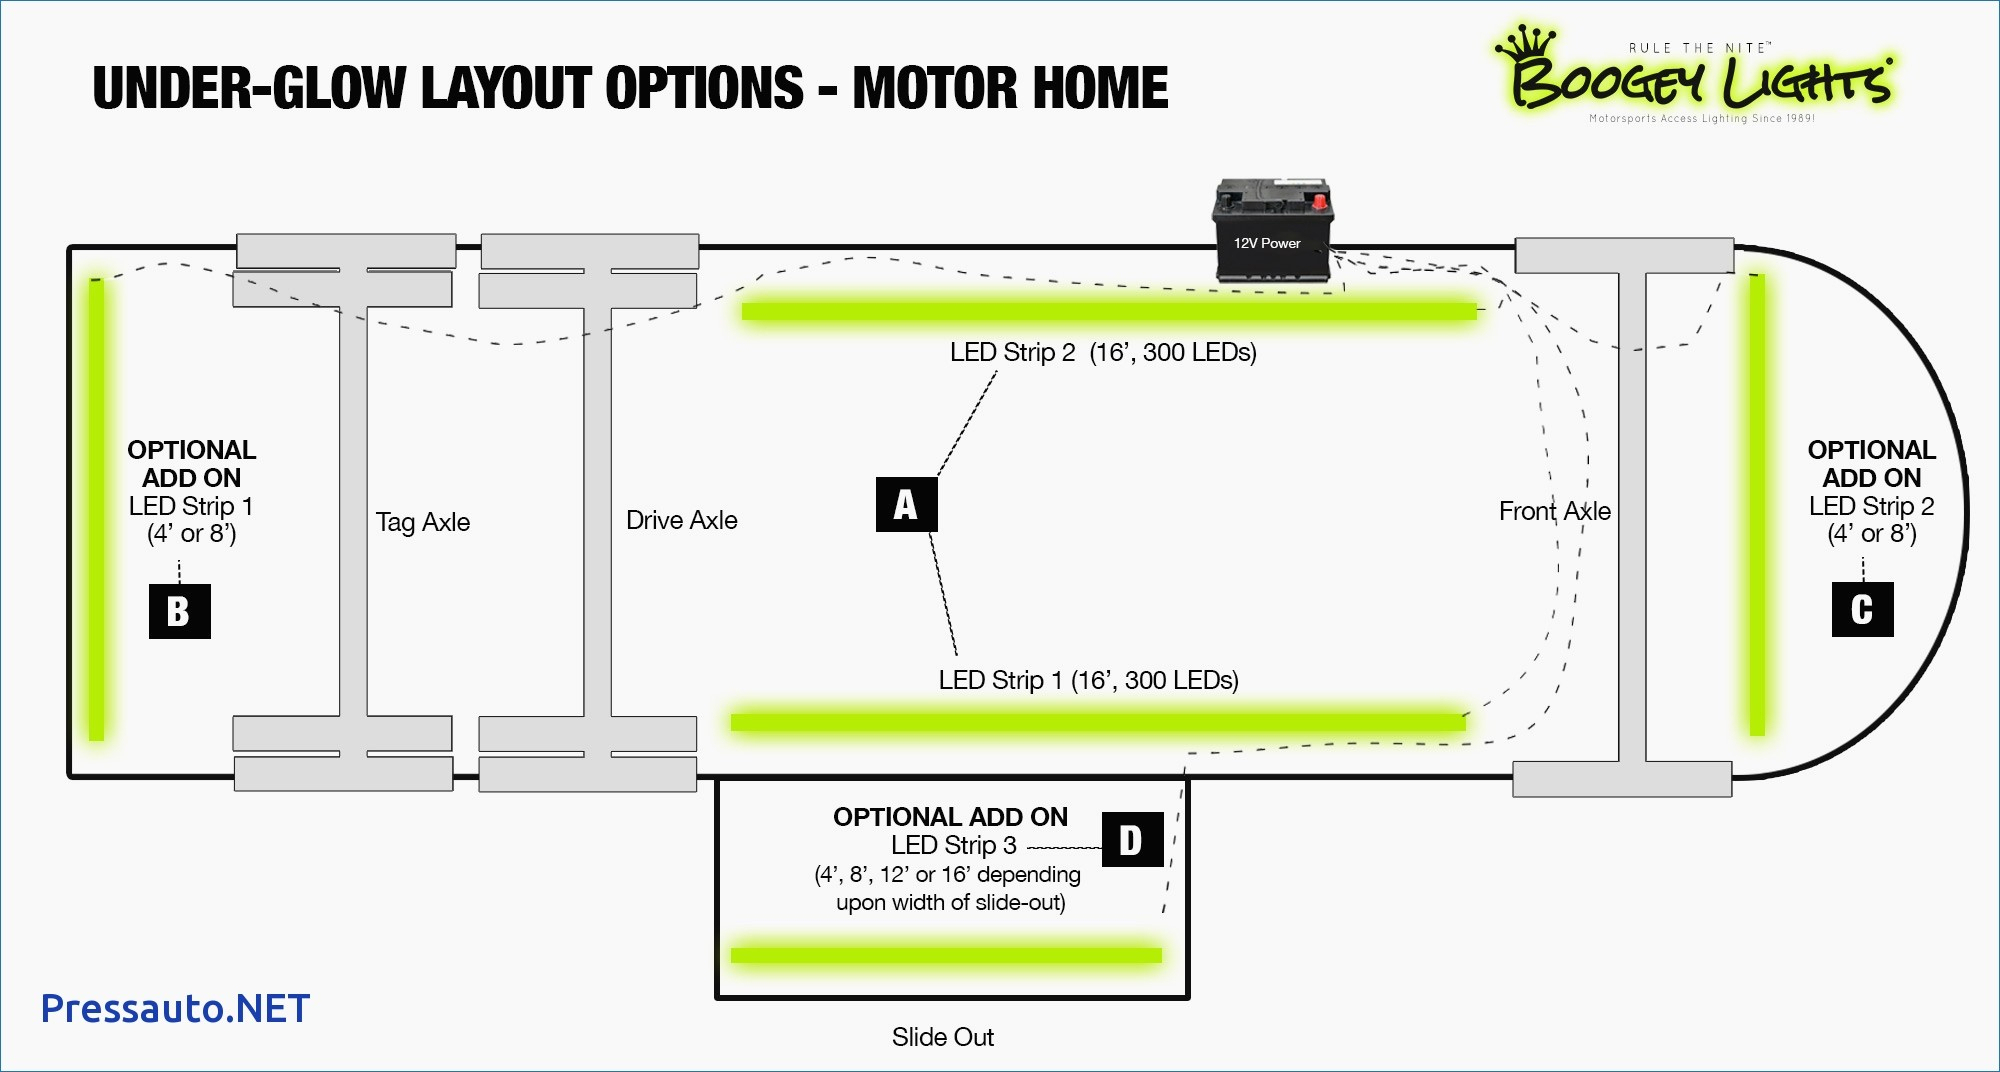 New Car Wiring Diagram Led | Wiring Library - Led Wiring Diagram For Trailer Lights